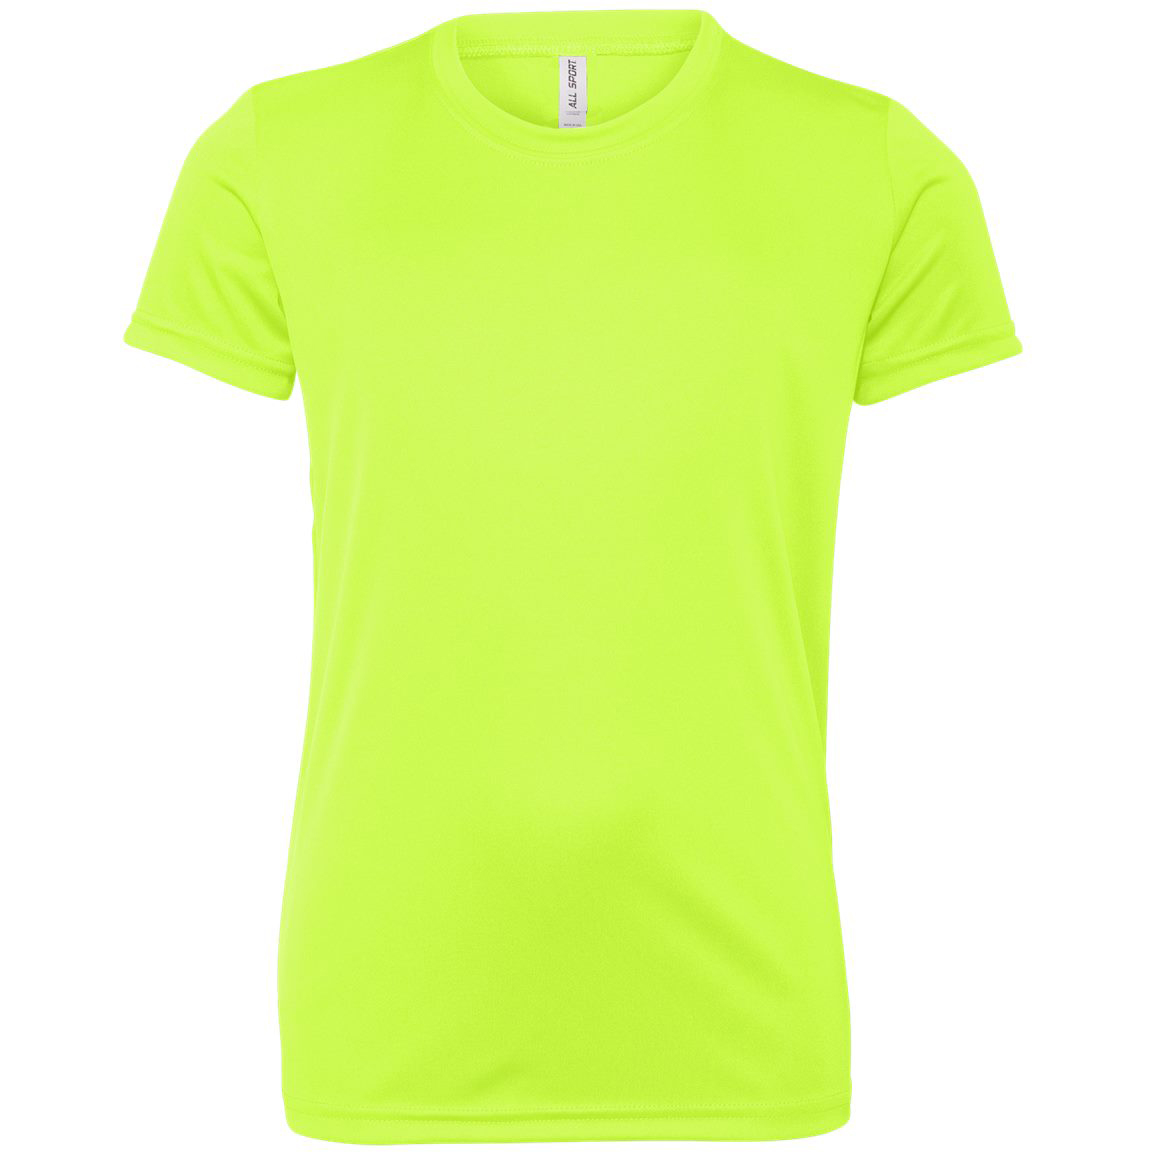 d26614919689 All Sport Y1009 Youth Performance Short Sleeve T-Shirt - Sport Safety Yellow